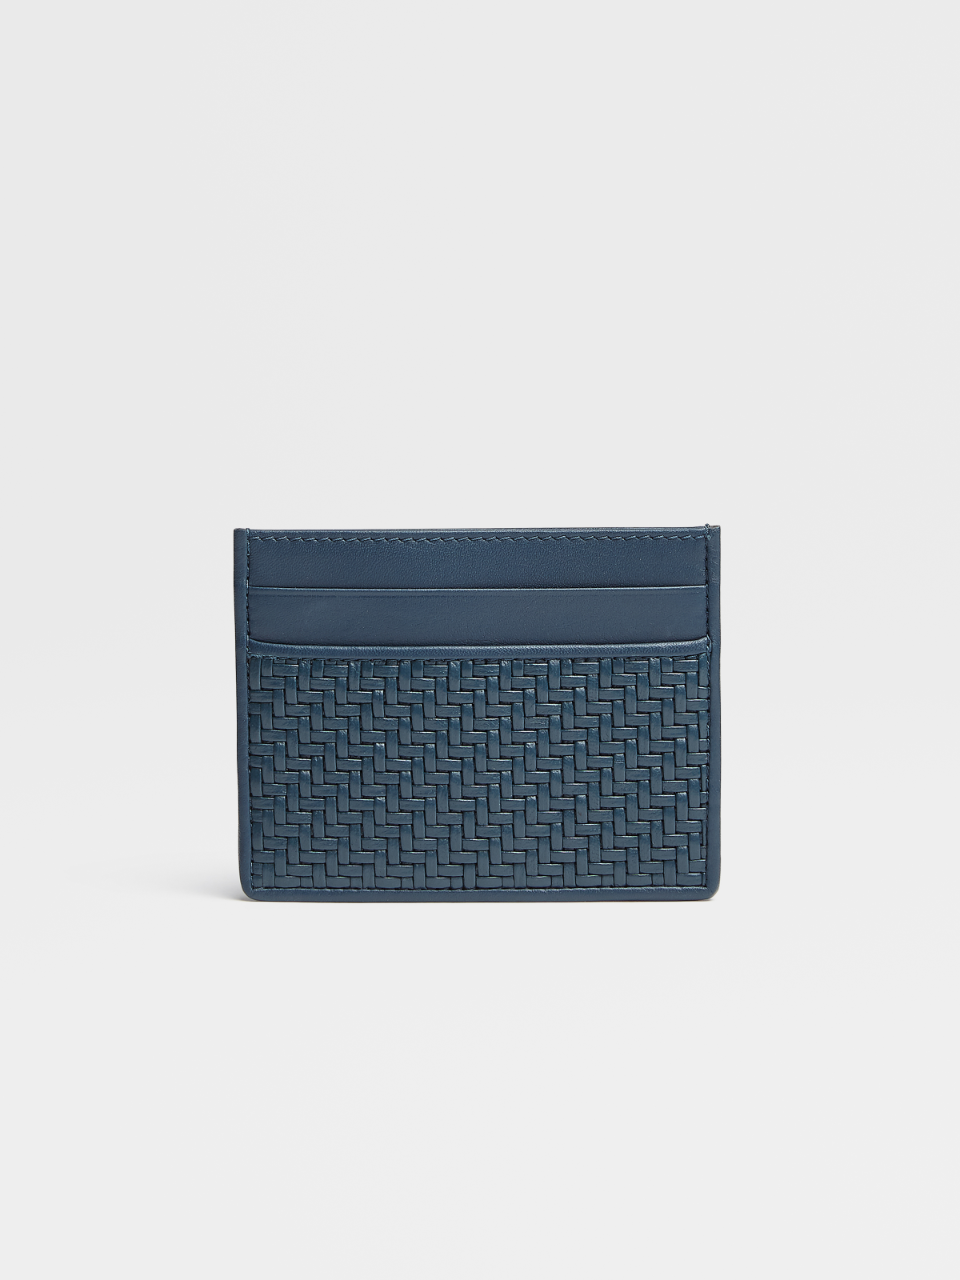 Pelletessuta™ Card Case